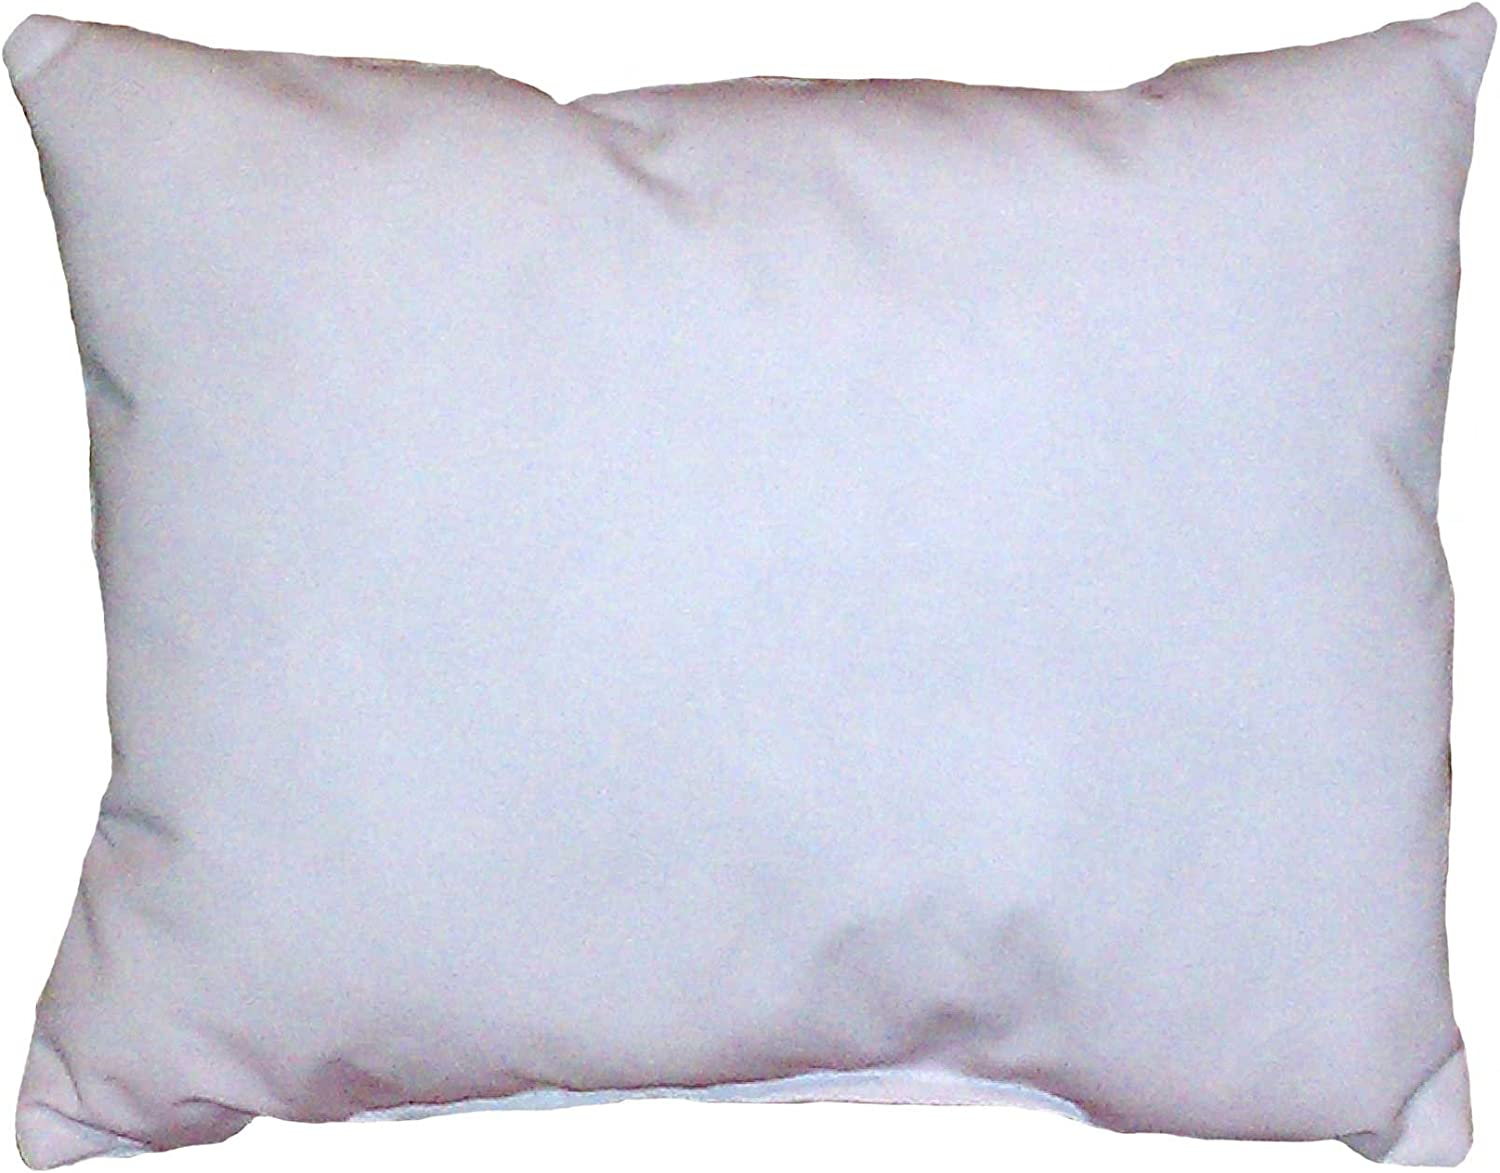 Pillow Inserts 16 x 16 Square 100/% polyester fibre filled